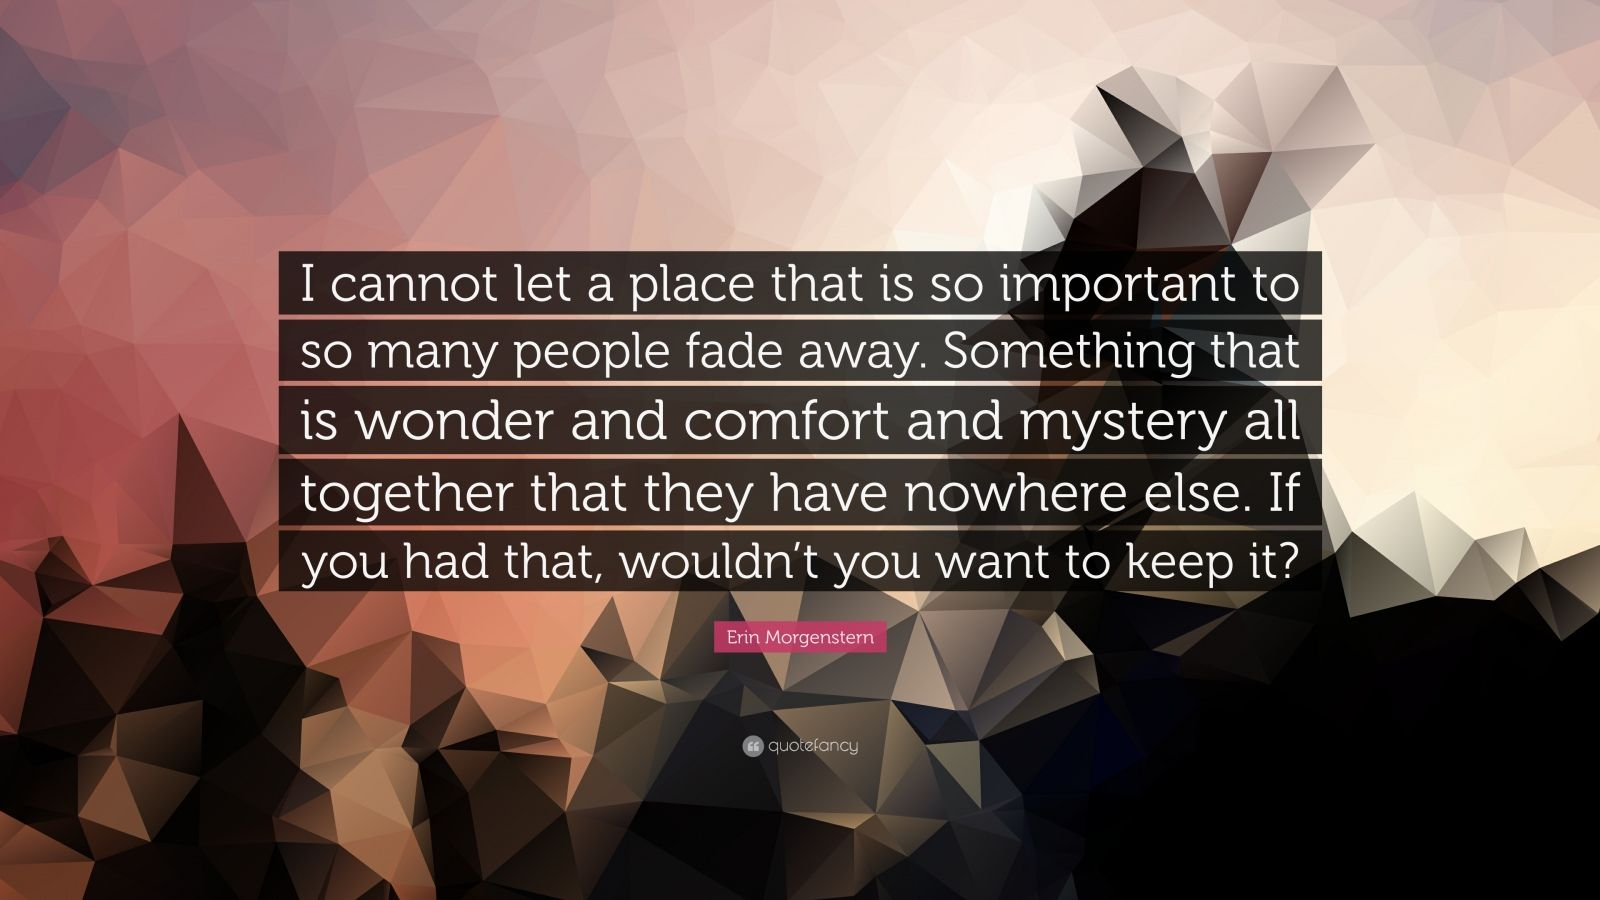 """Erin Morgenstern Quote: """"I cannot let a place that is so important to so many people fade away. Something that is wonder and comfort and mystery all together that they have nowhere else. If you had that, wouldn't you want to keep it?"""""""